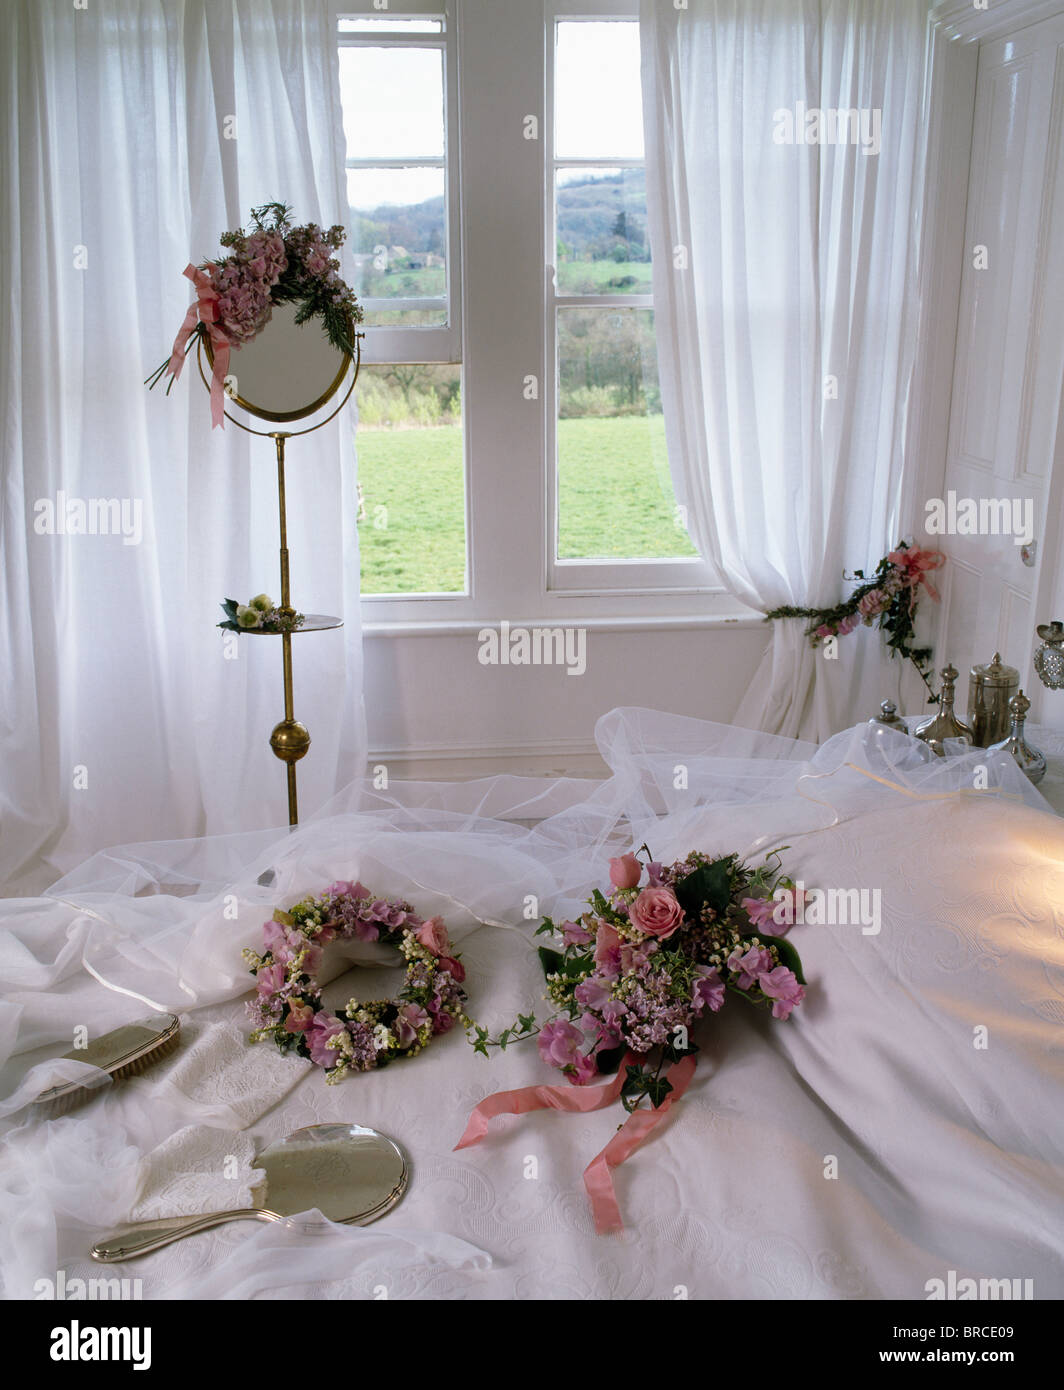 mirrors drapes soft furnishings stockfotos mirrors. Black Bedroom Furniture Sets. Home Design Ideas